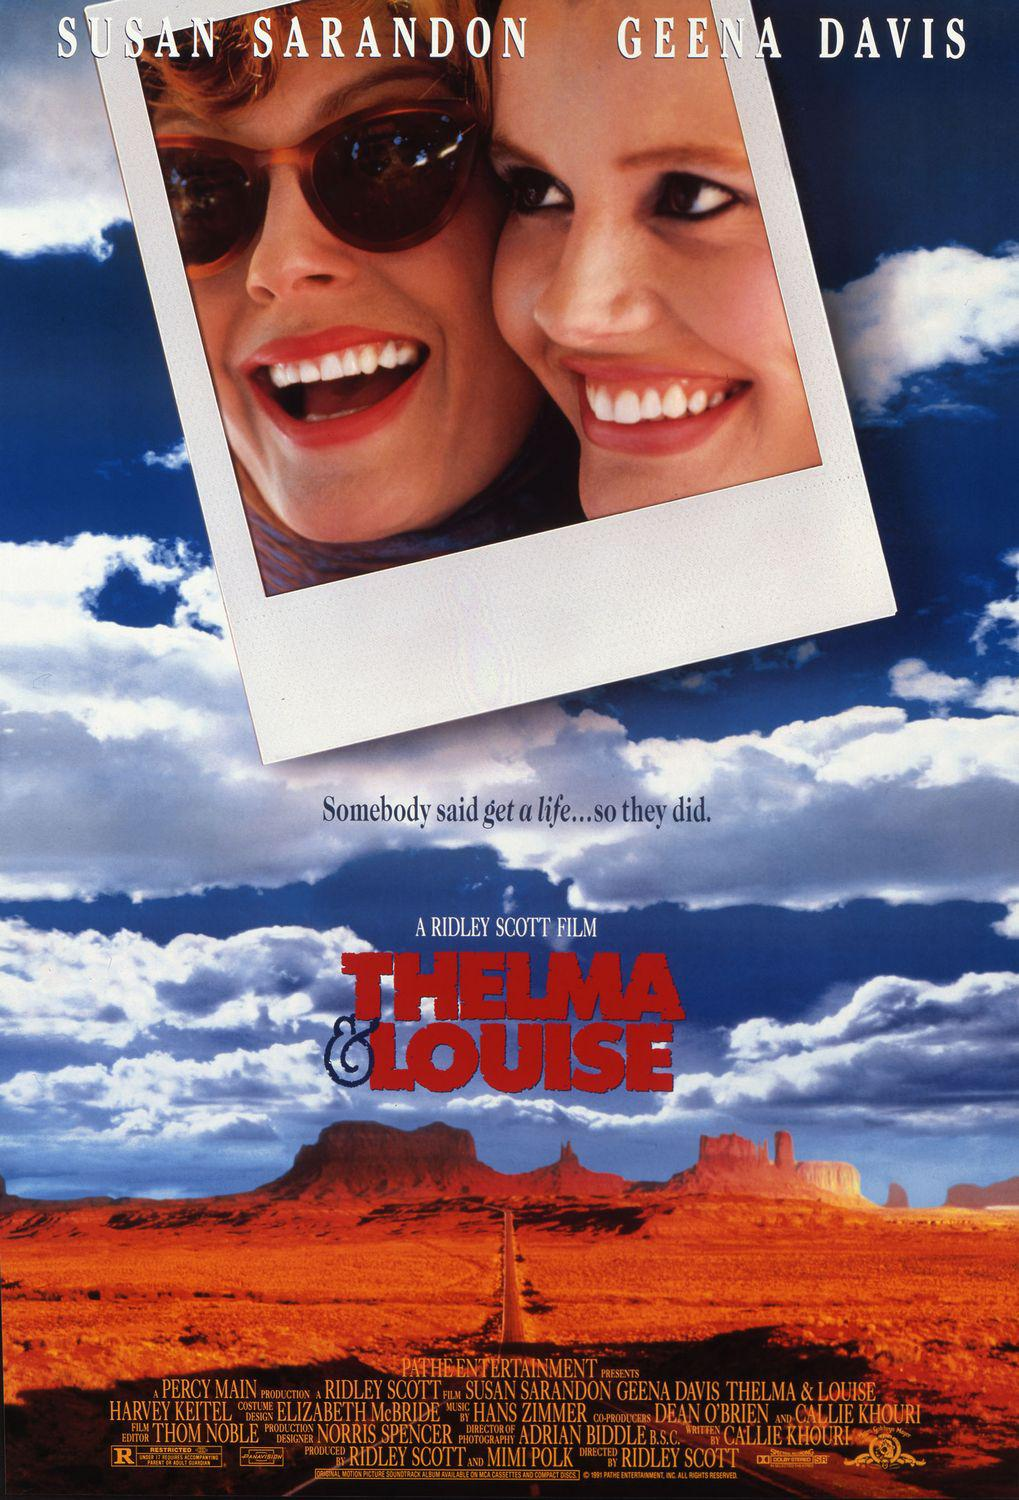 Thelma and Louise - Susan Sarandon - Geena Davis